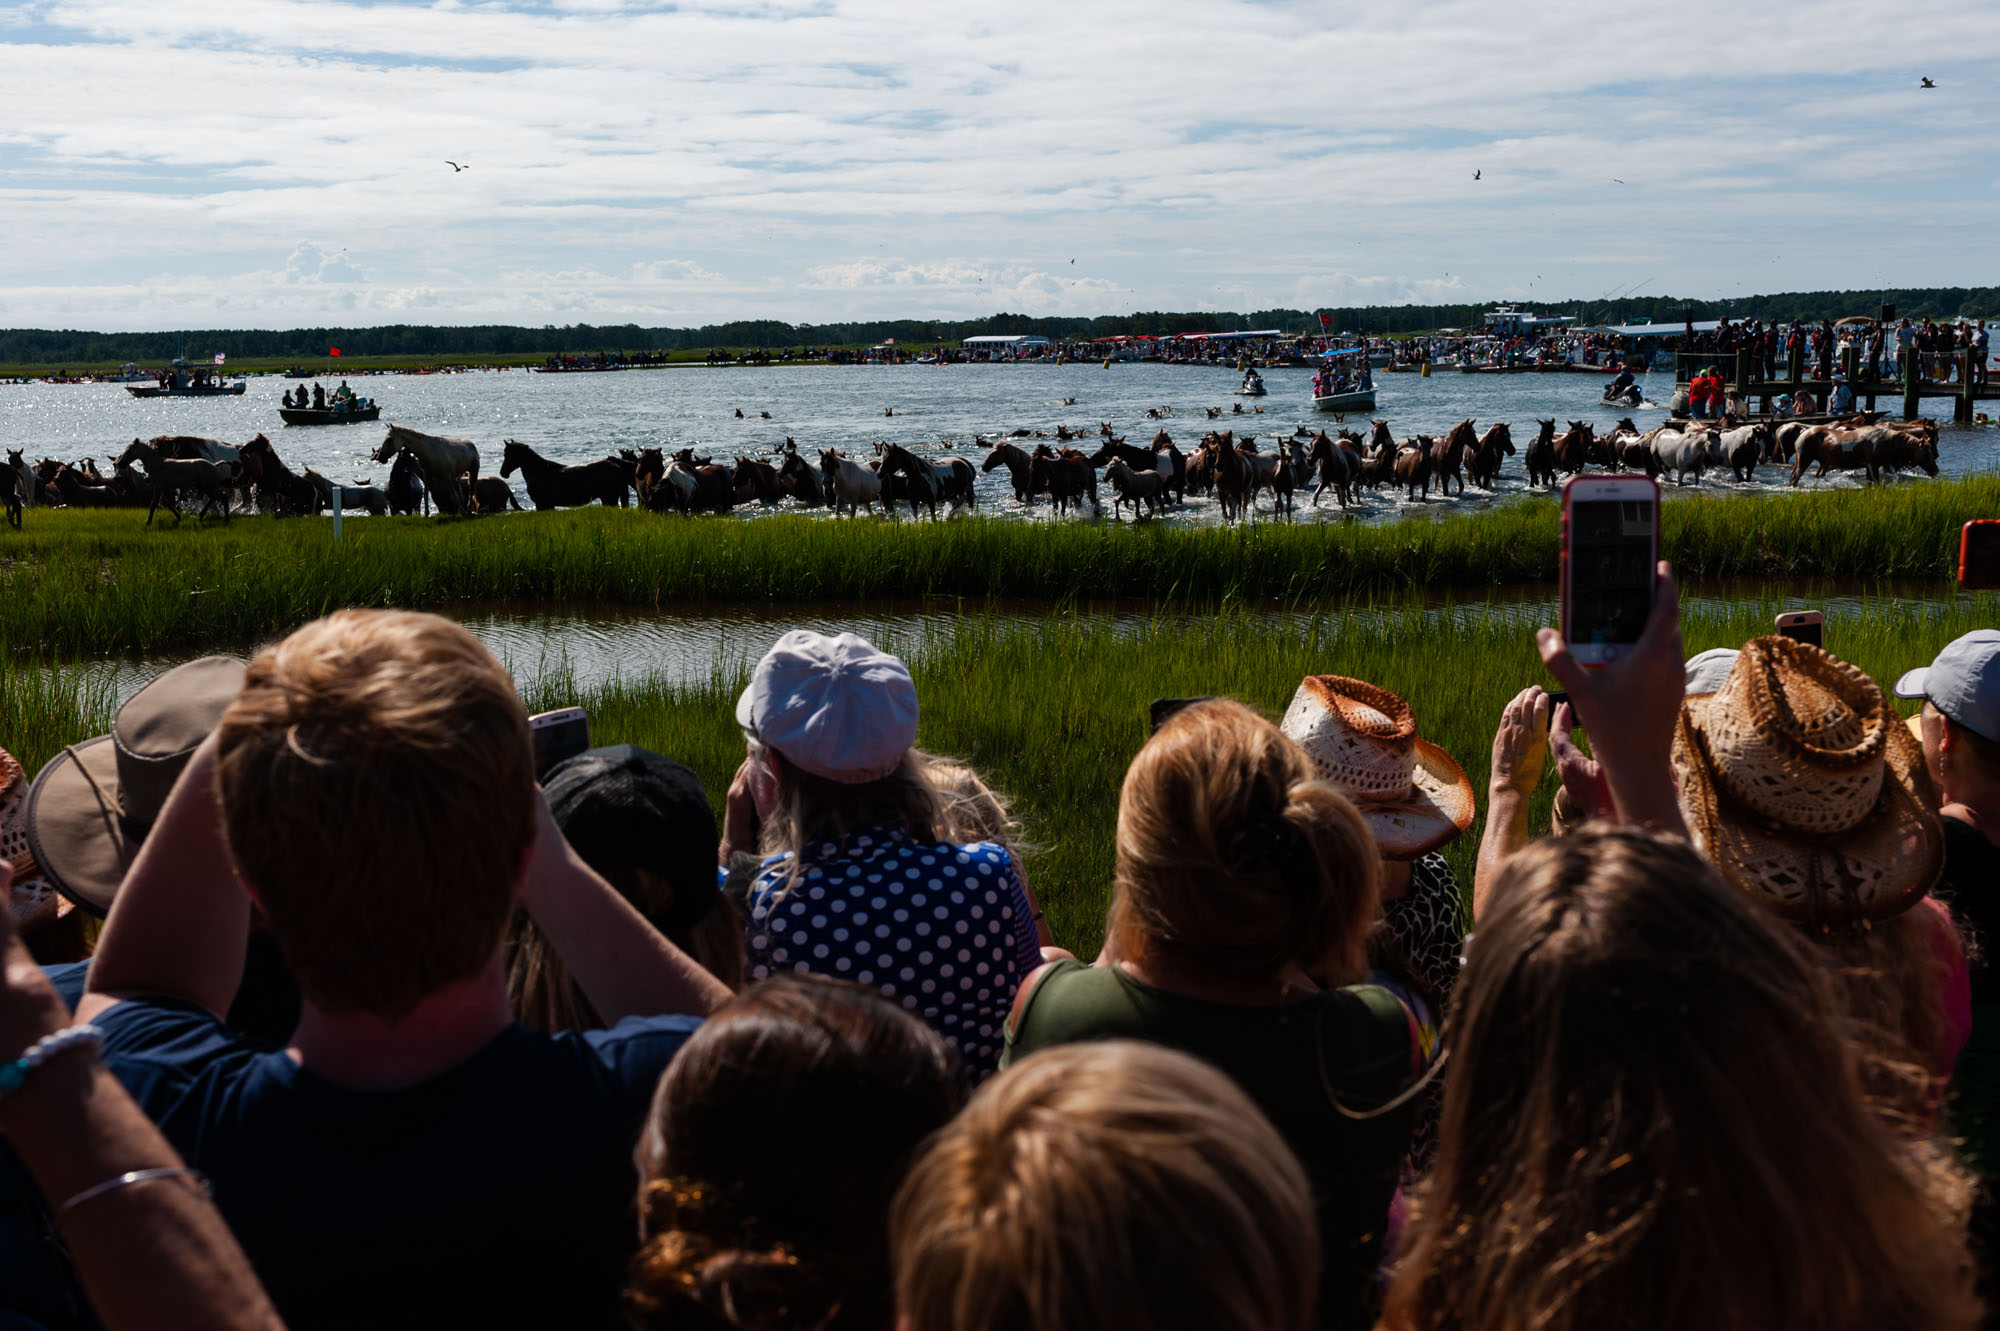 EmilyLewisCreative_20190724_Chincoteague Pony Swim-24.jpg